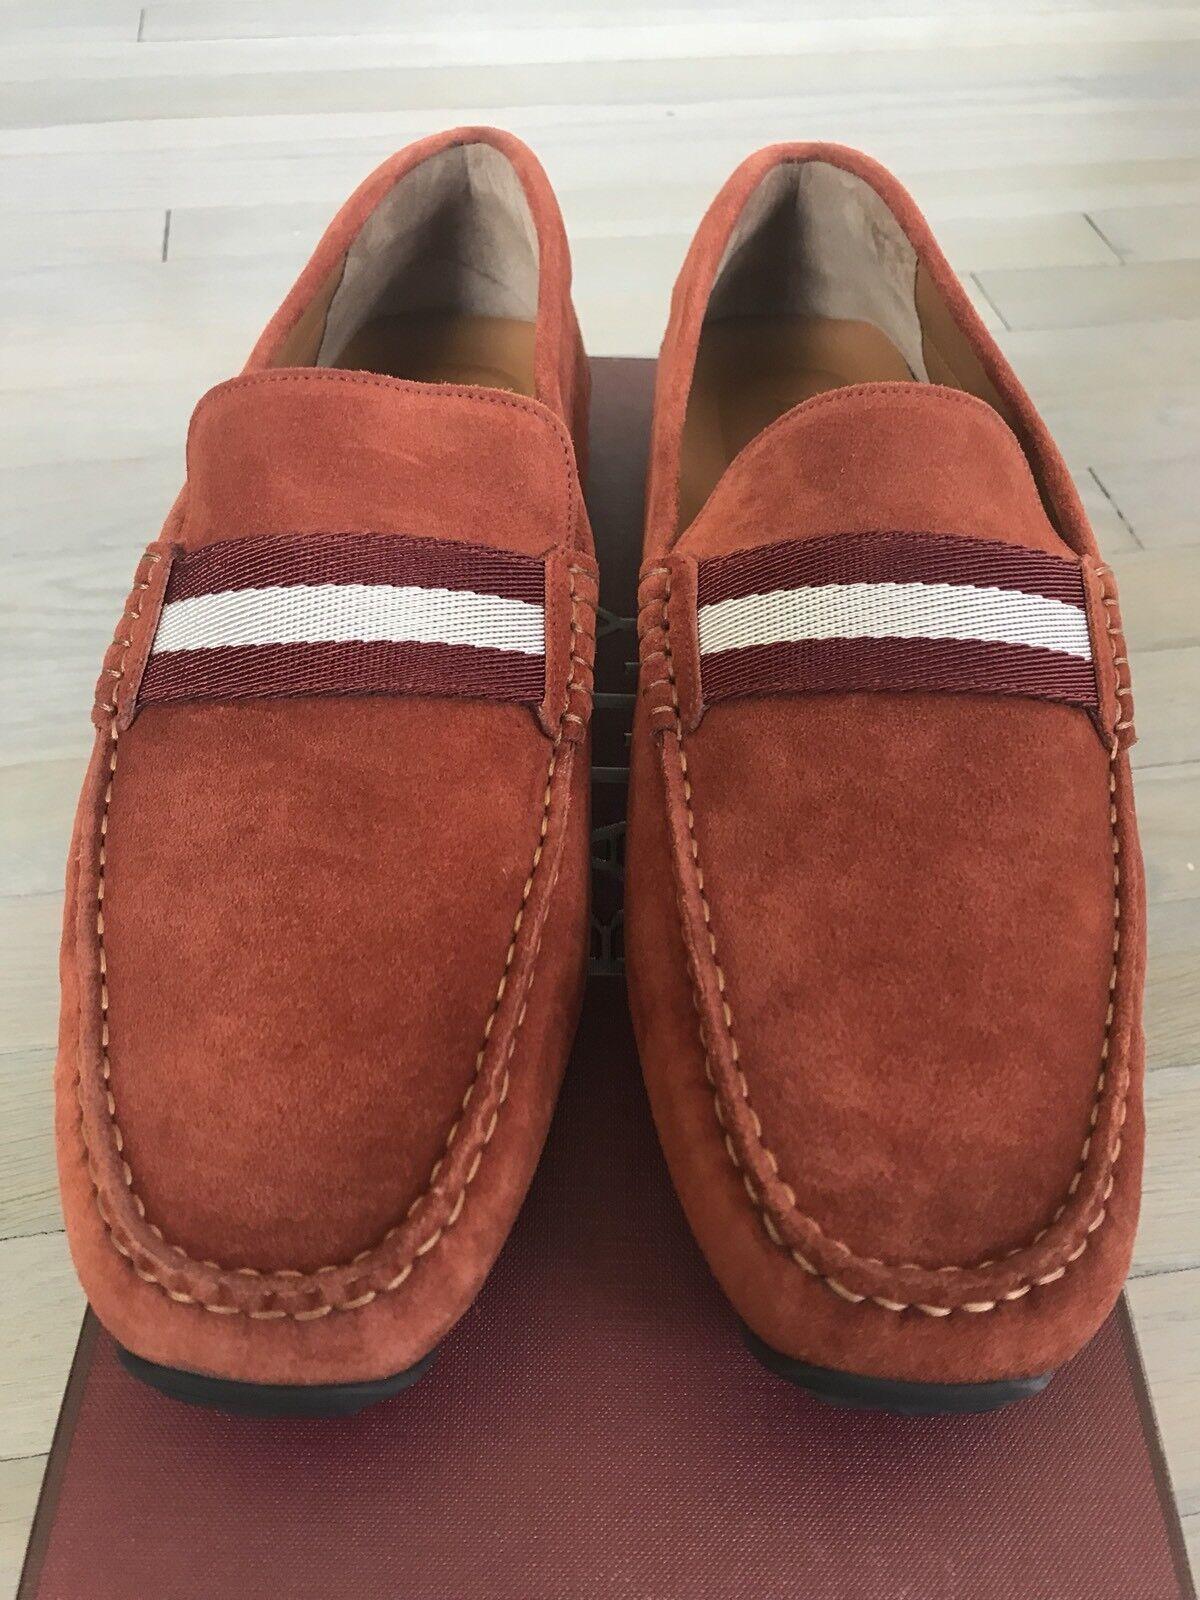 550  Bally Pearce Rust Sienna US Suede Driver Size US Sienna 13 Made in Italy 8125e4